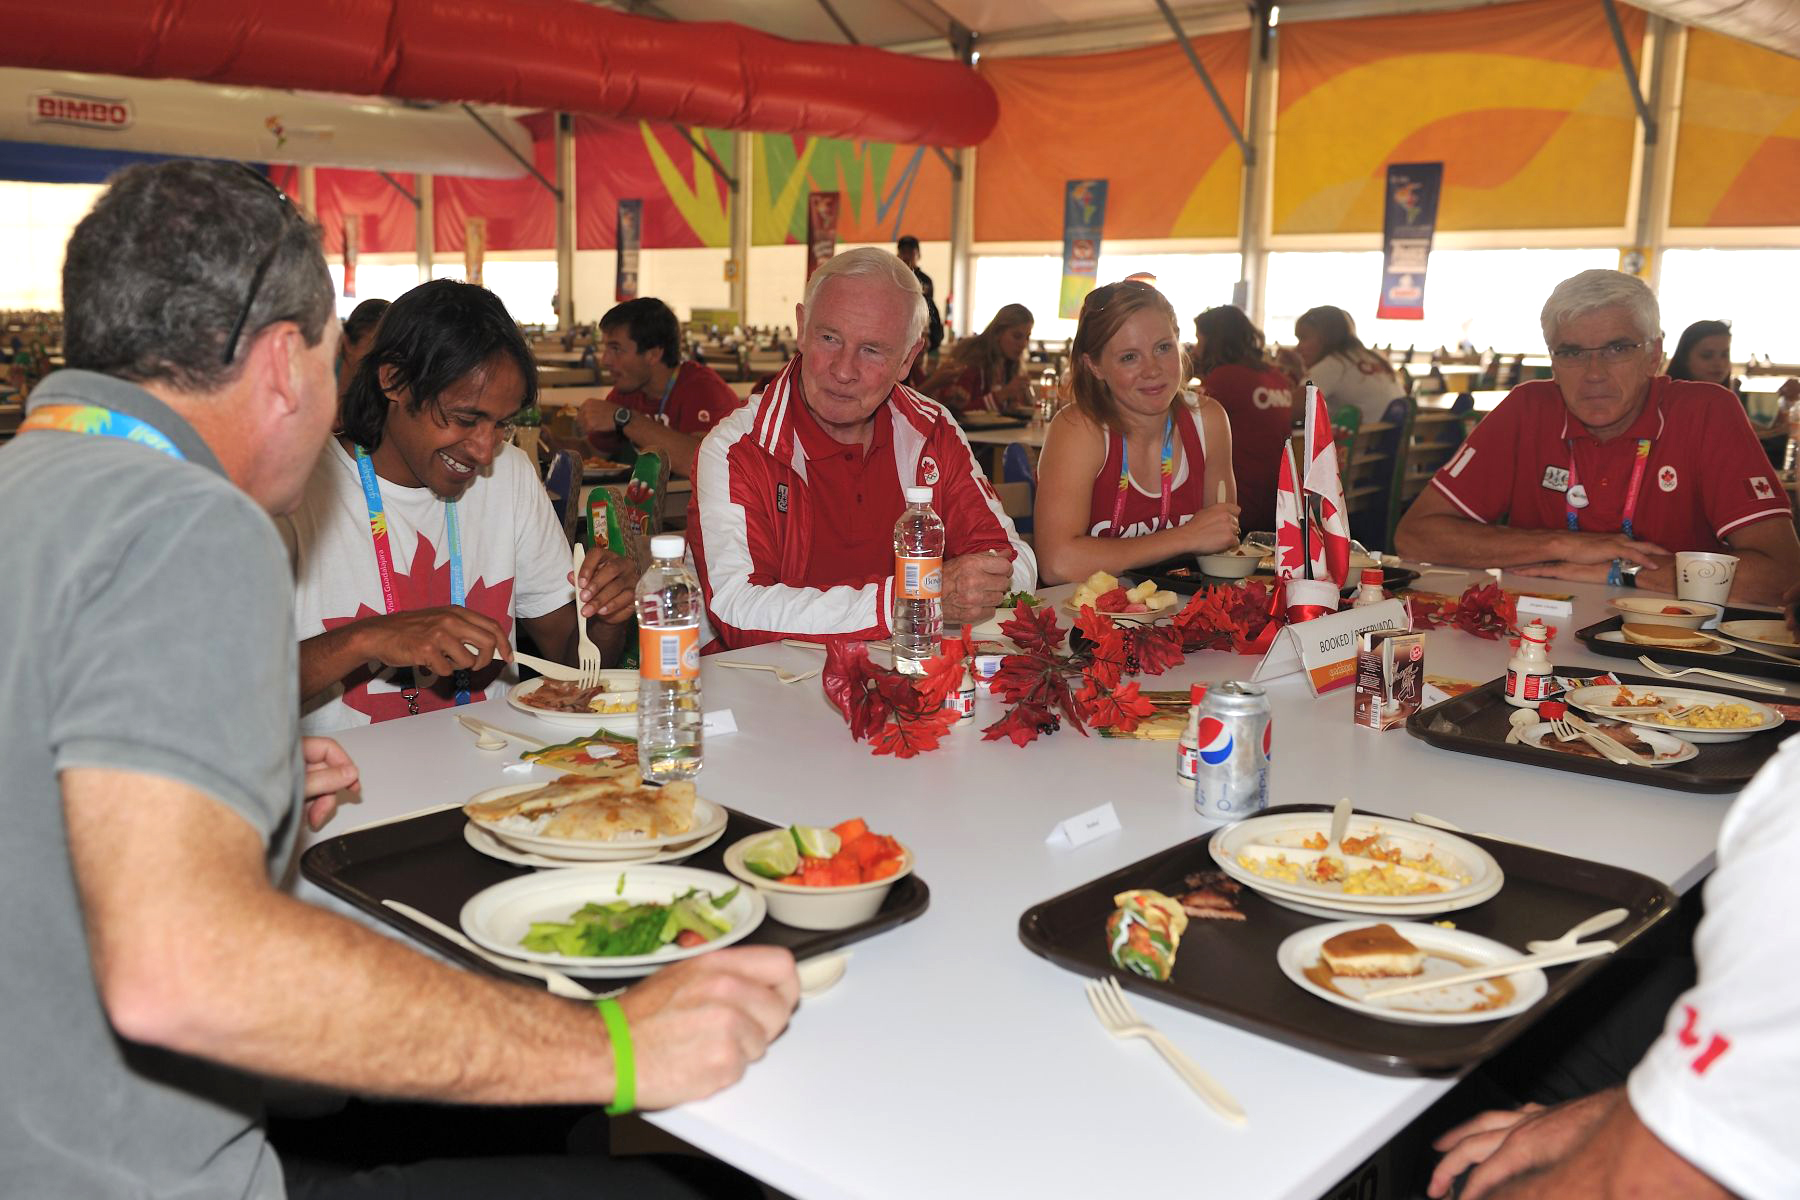 His Excellency had lunch with Team Canada athletes in the village's main dining hall to congratulate them on their great performances and success at these Games.